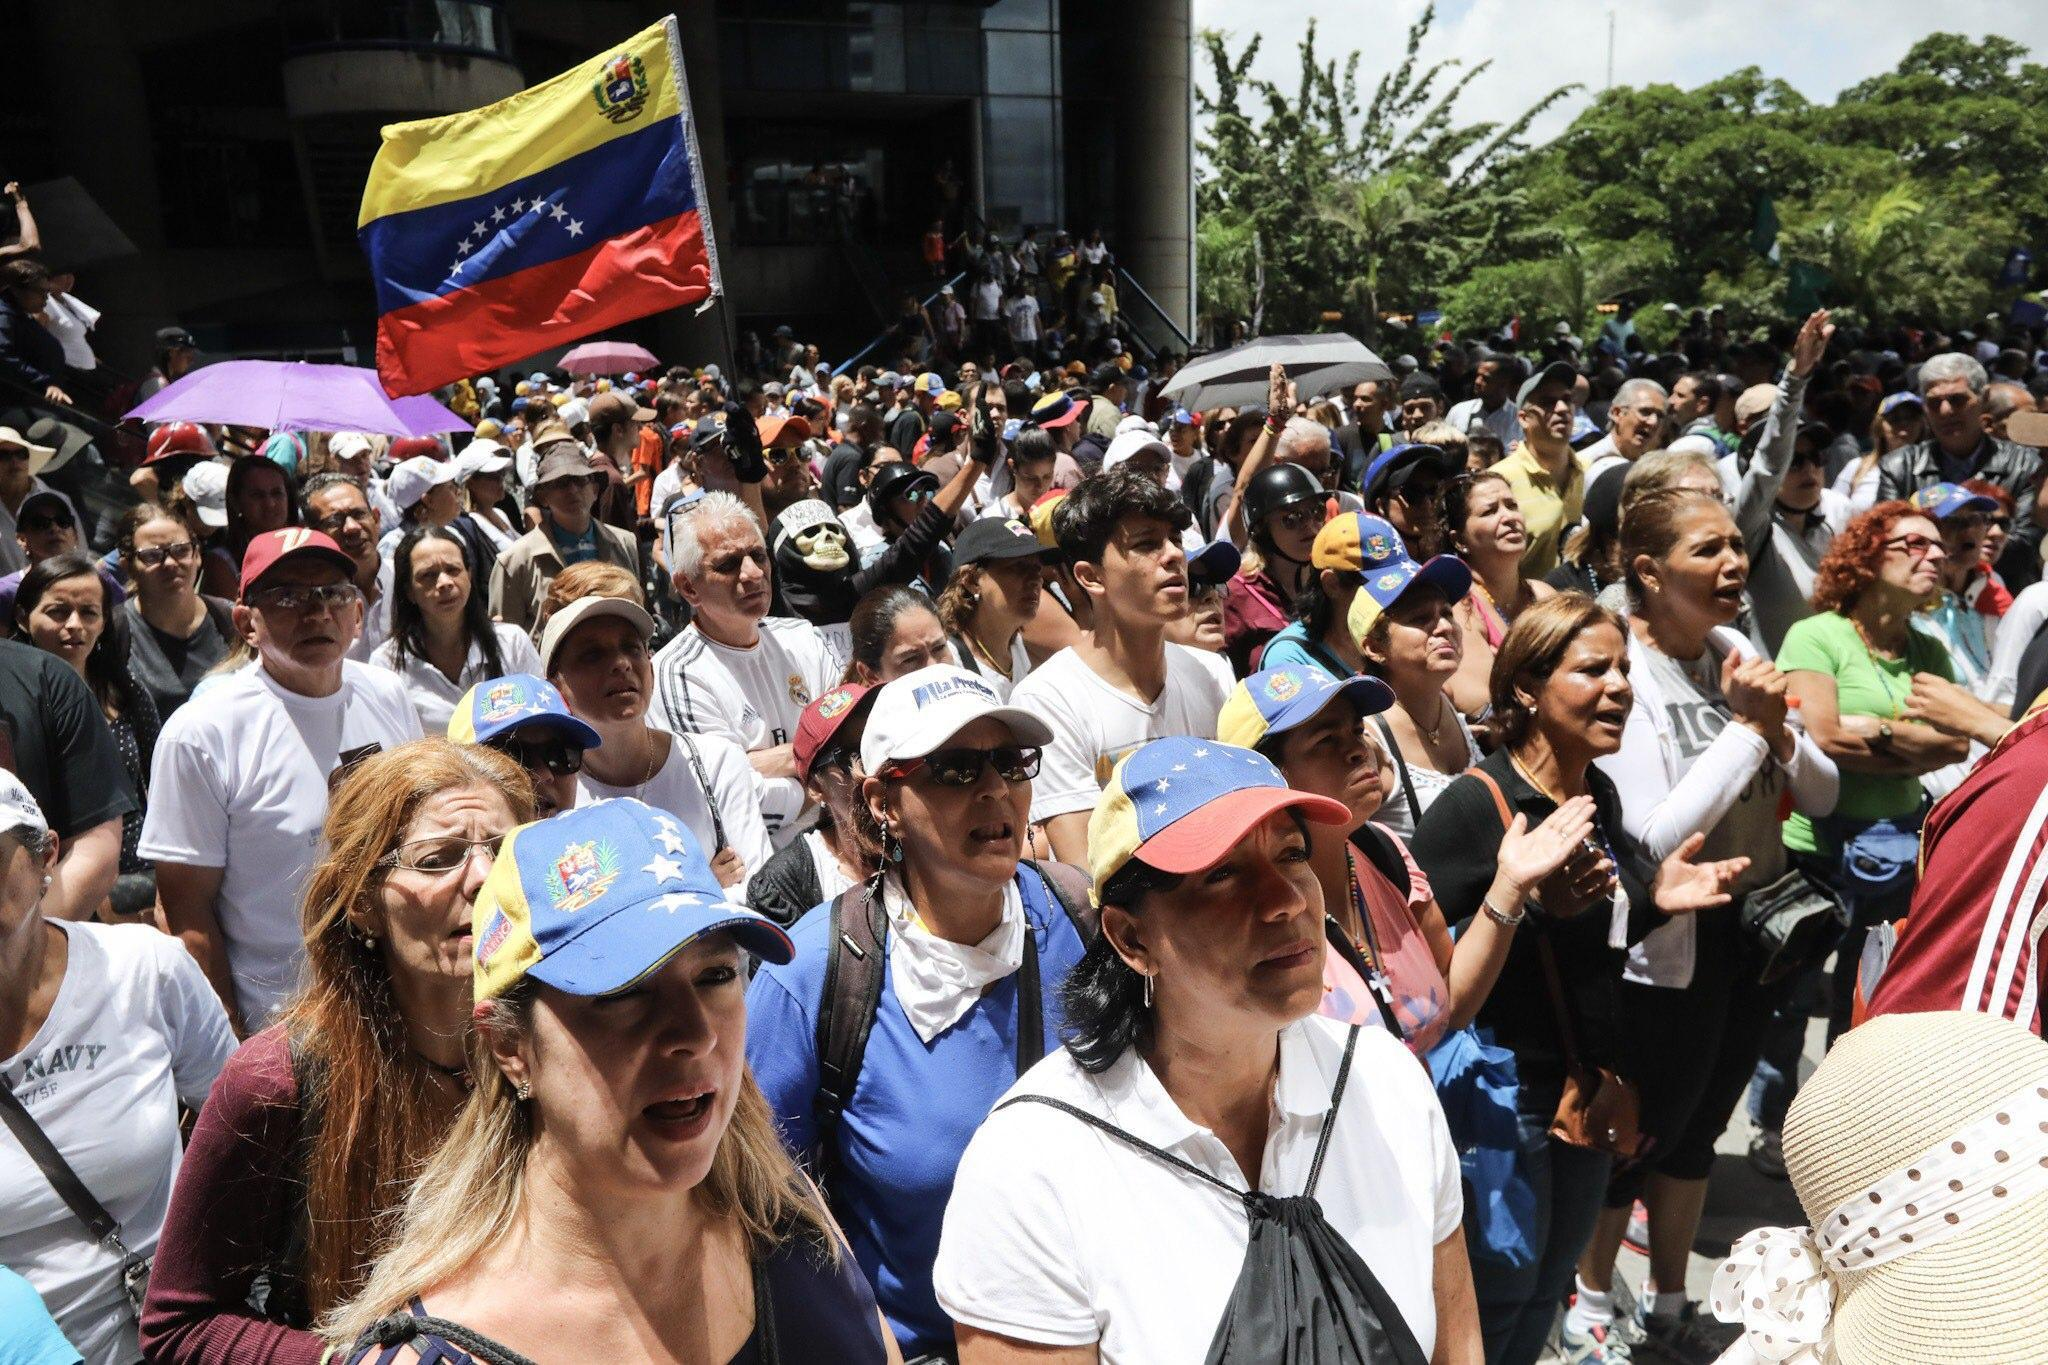 Opposition protesters march in Caracas despite restrictions